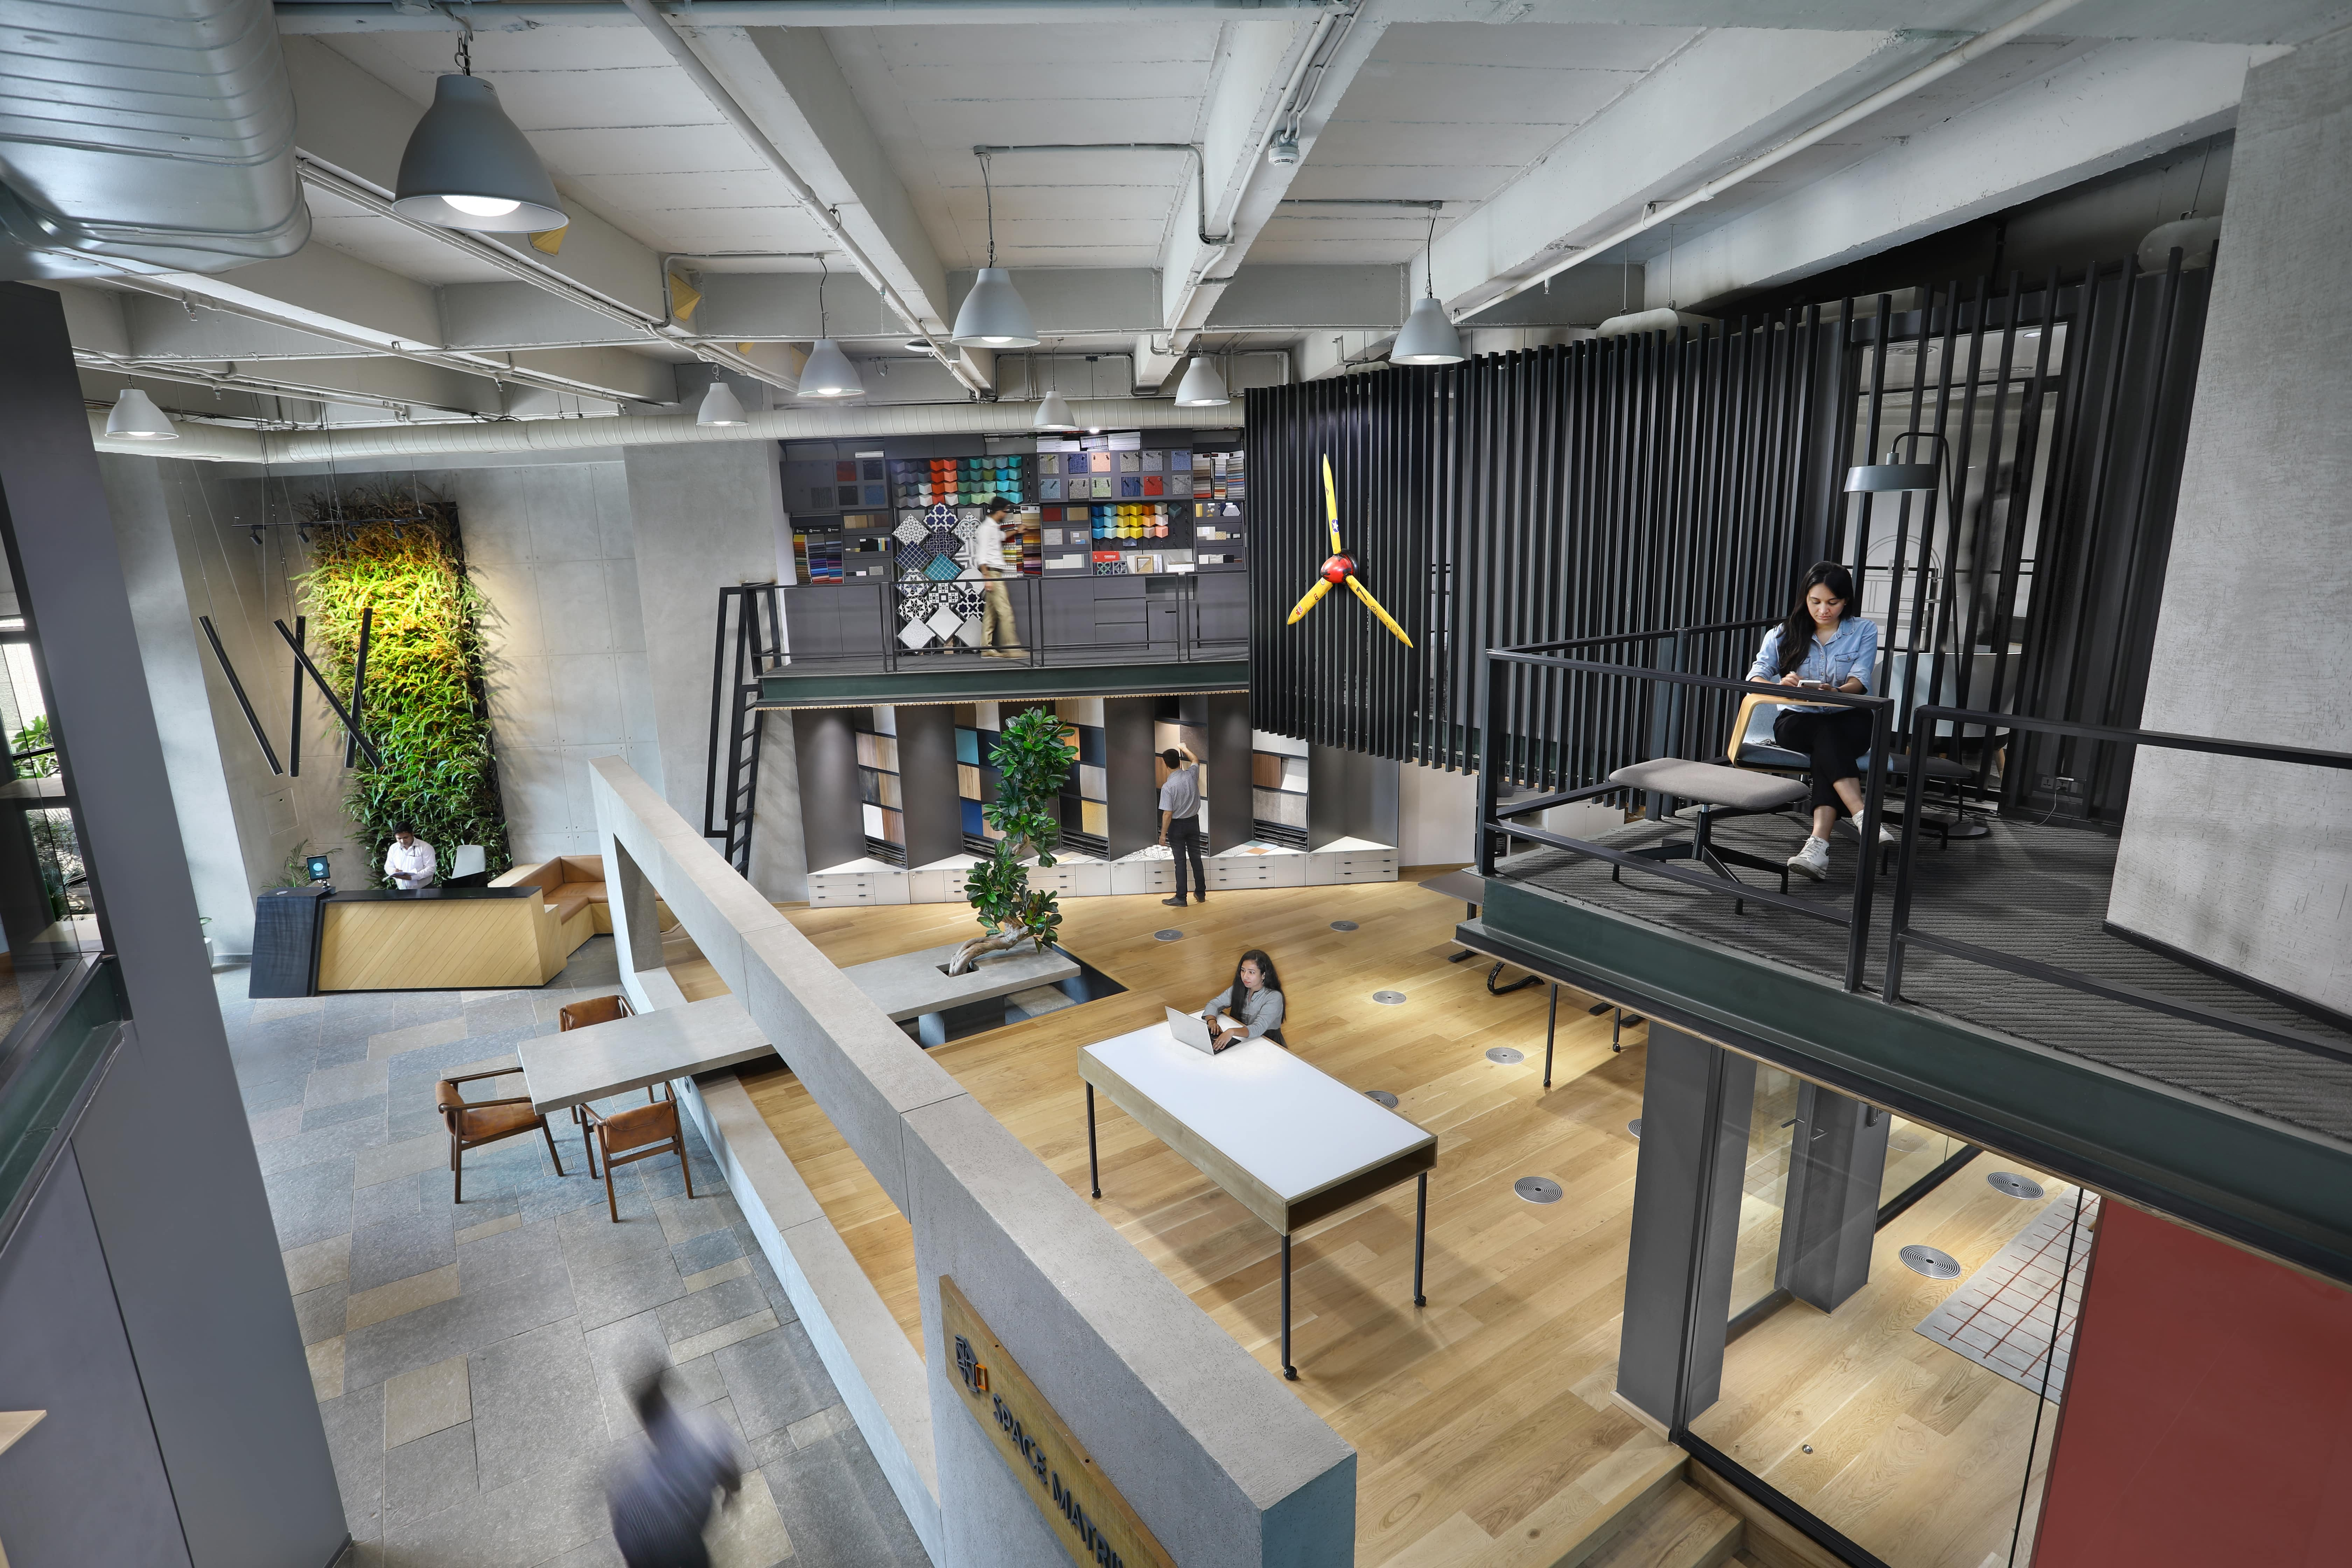 Space Matrix Beta Lab enables collaboration for the hybrid workforce